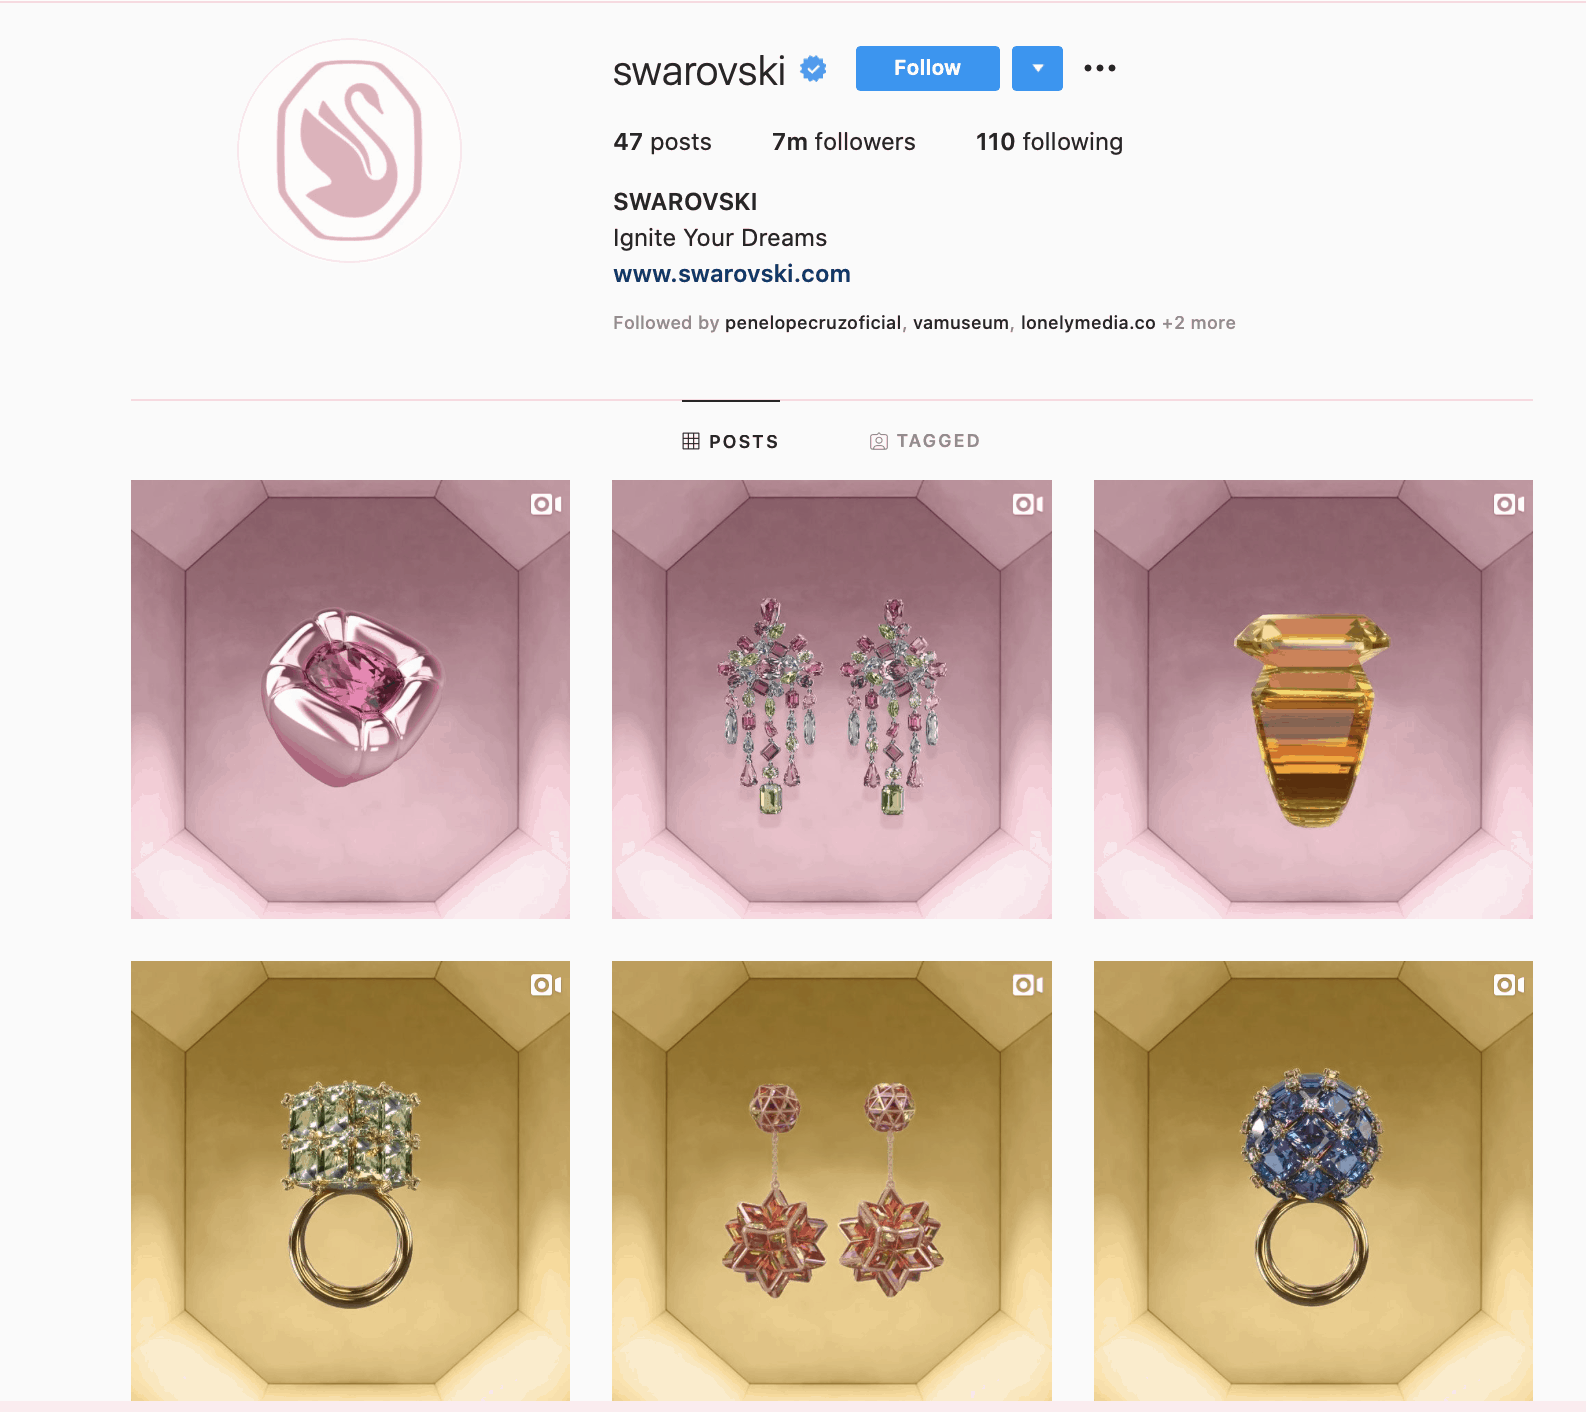 Brand aesthetics used to attract more followers on Instagram.